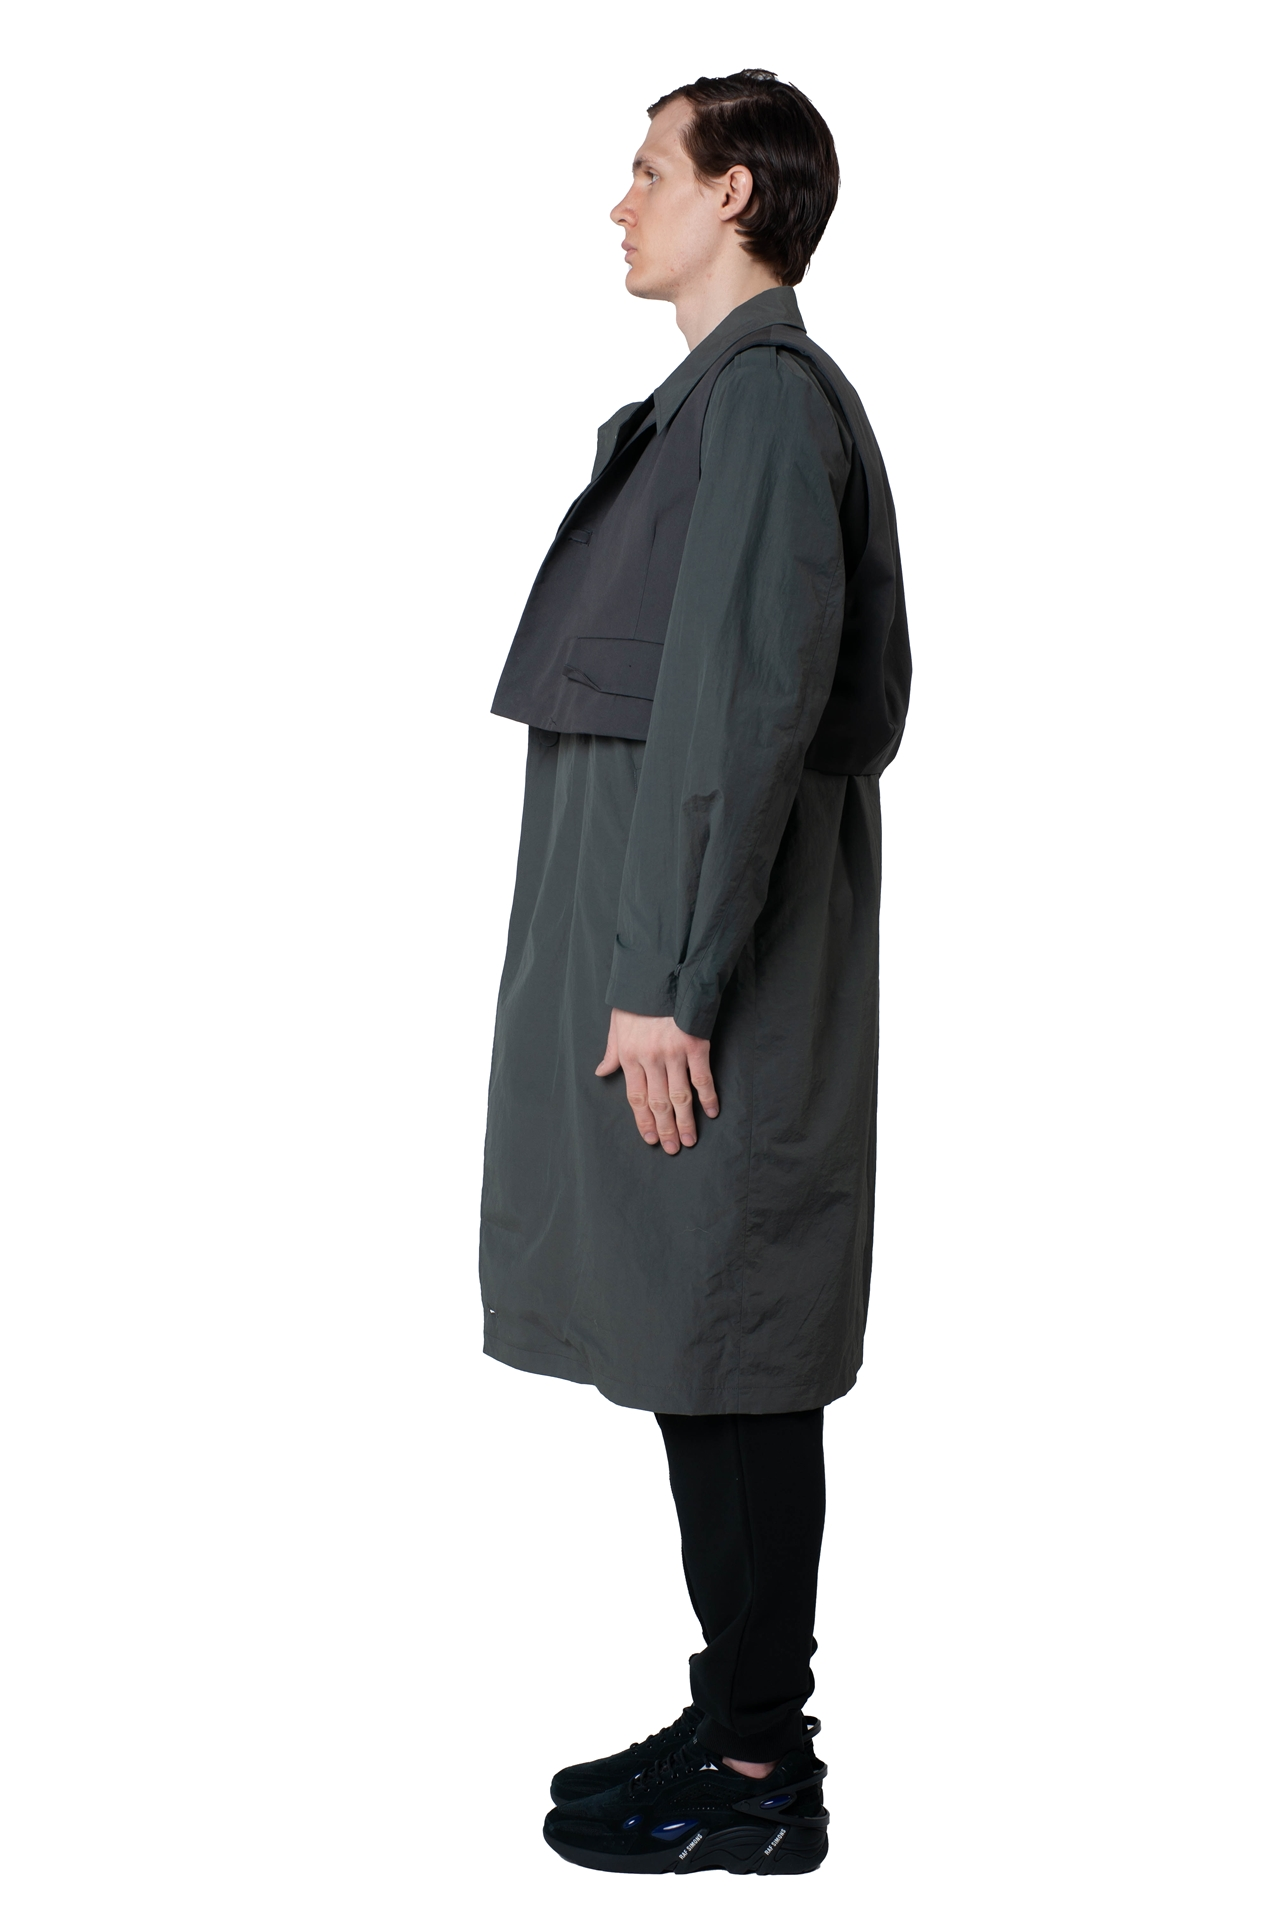 H Trenchcoat BKASSTC02CC Größe: A2 Farbe: charcoal